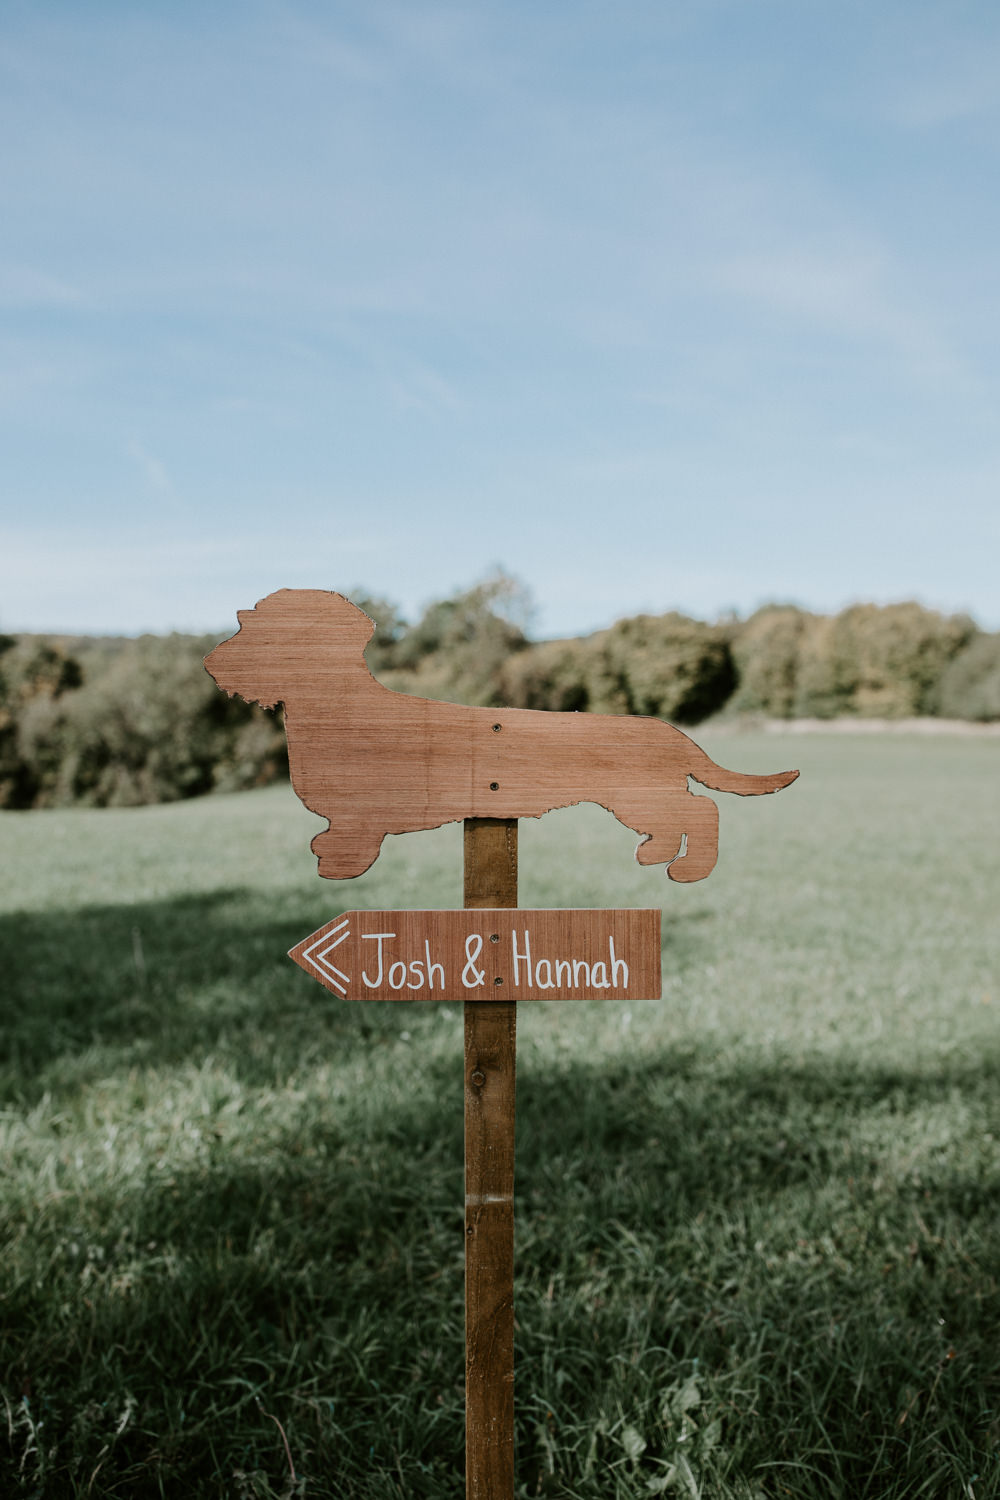 Wooden Sign Signage Post Dog Barn Upcote Wedding Siobhan Beales Photography